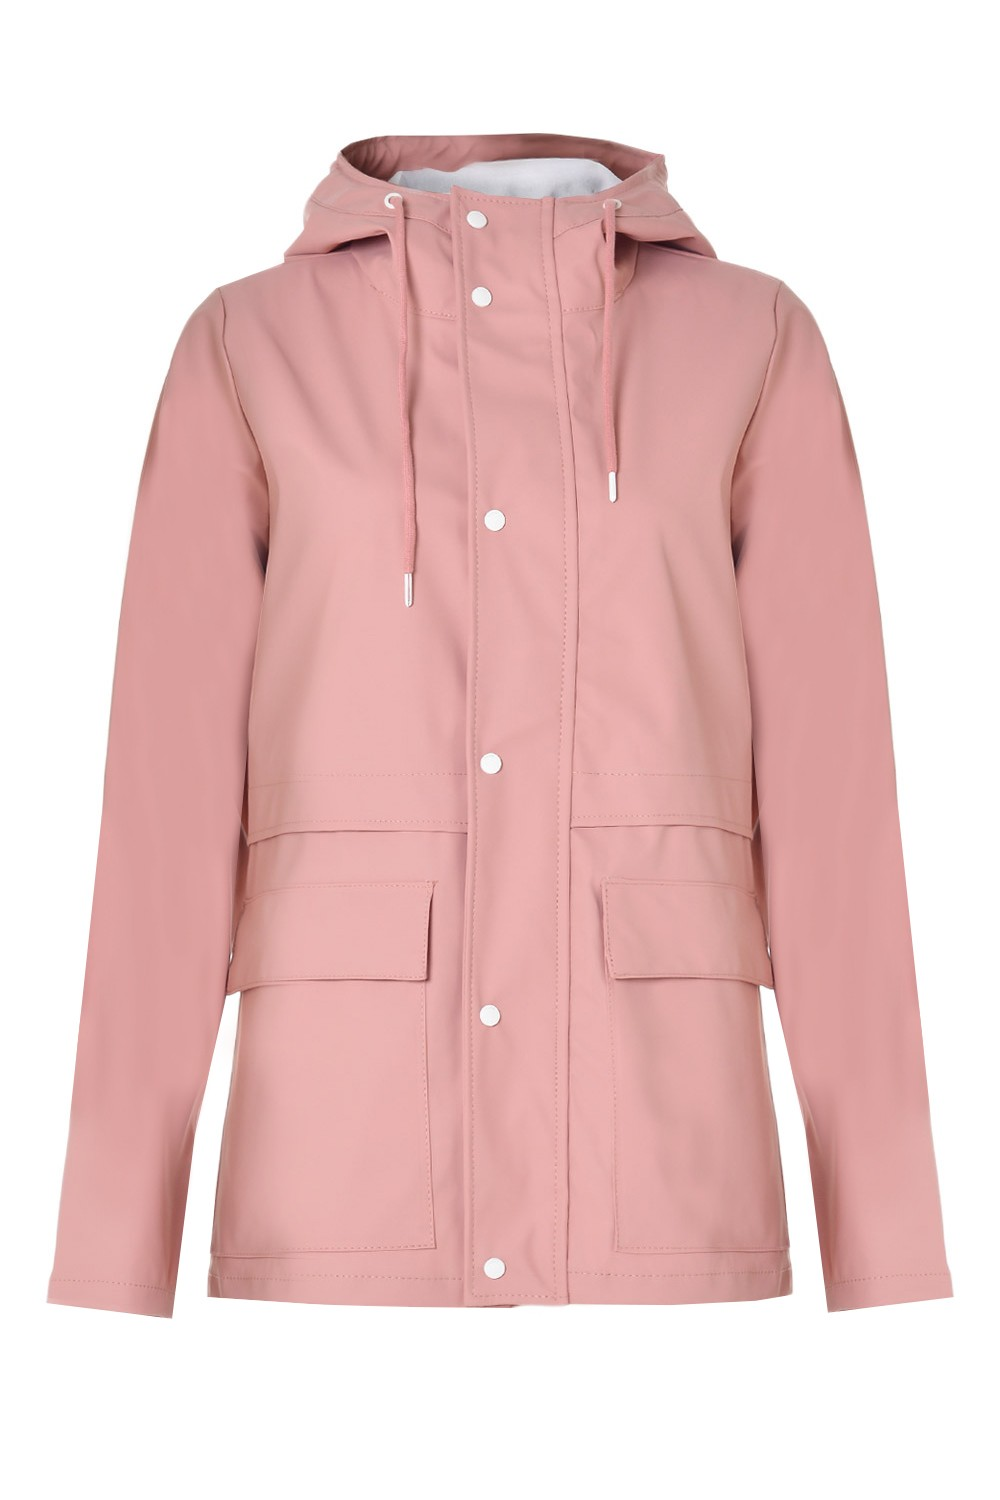 Train Short Raincoat in Rose